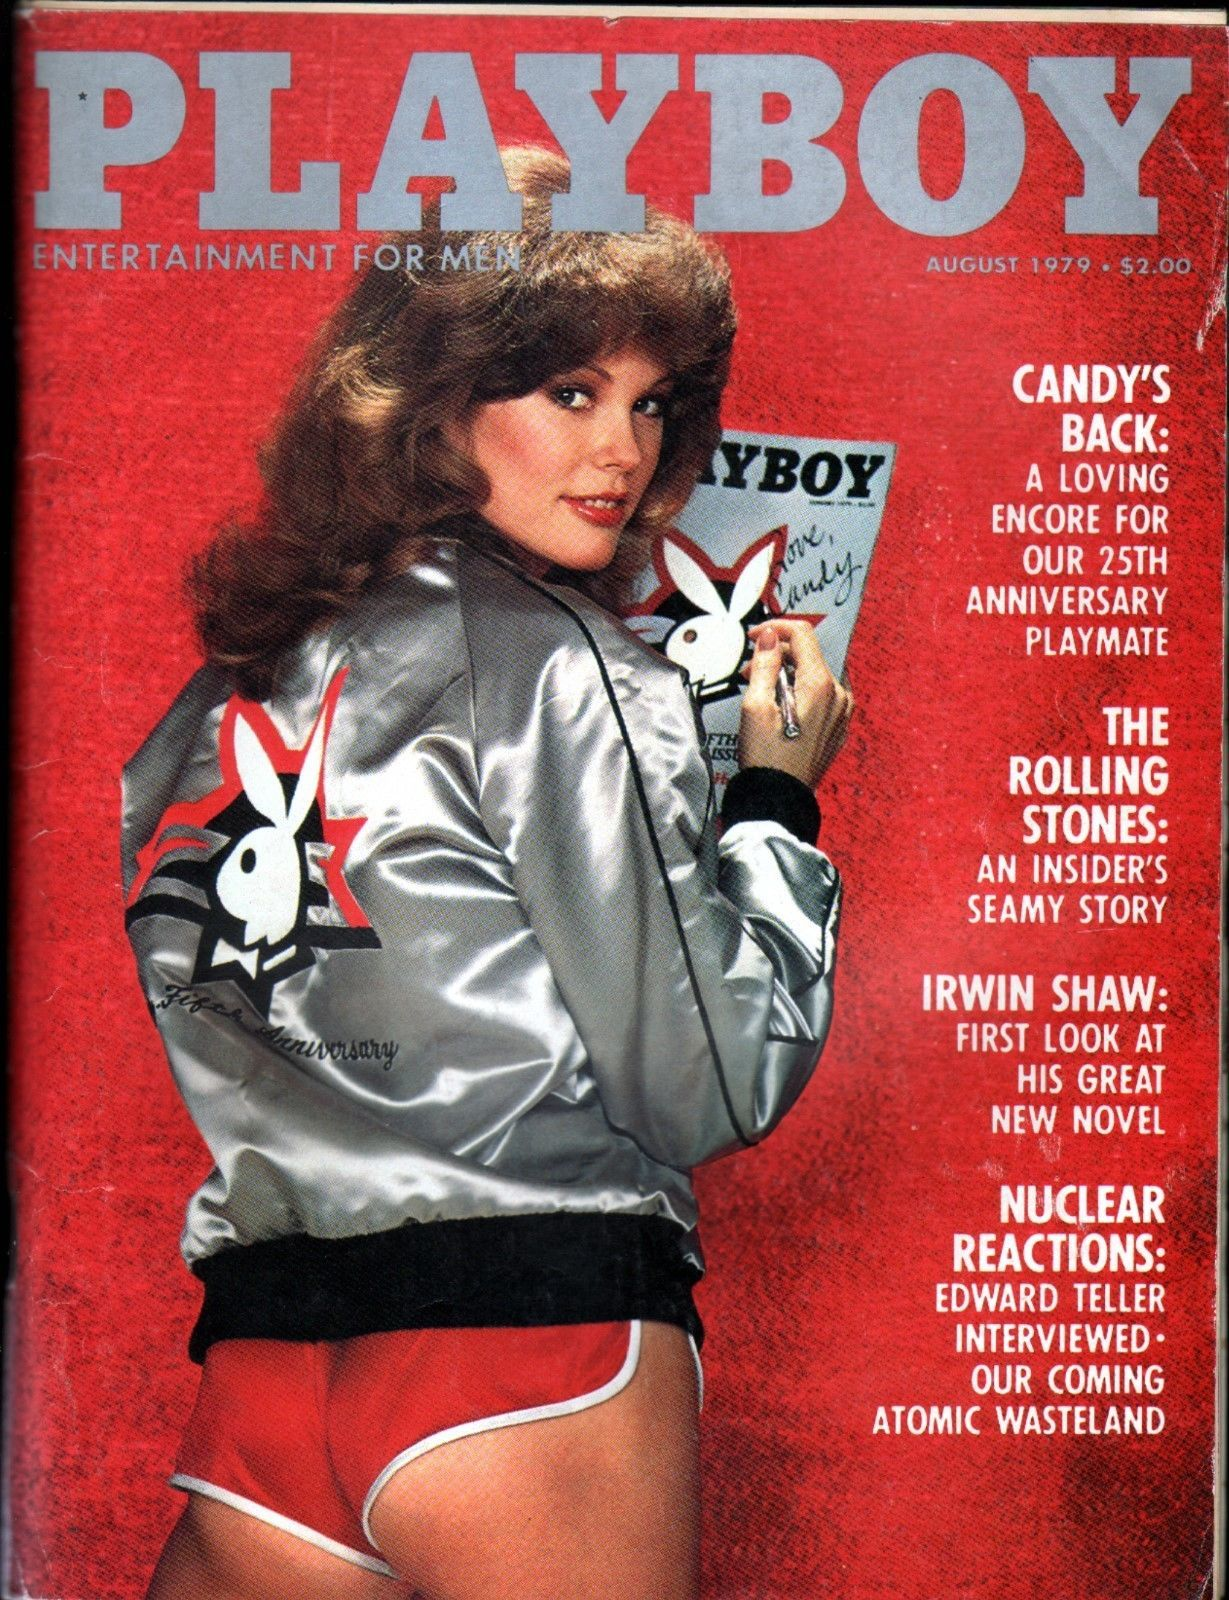 AUGUST 1979 PLAYBOY- Playmate: DOROTHY STRATTEN Cover: CANDY LOVING